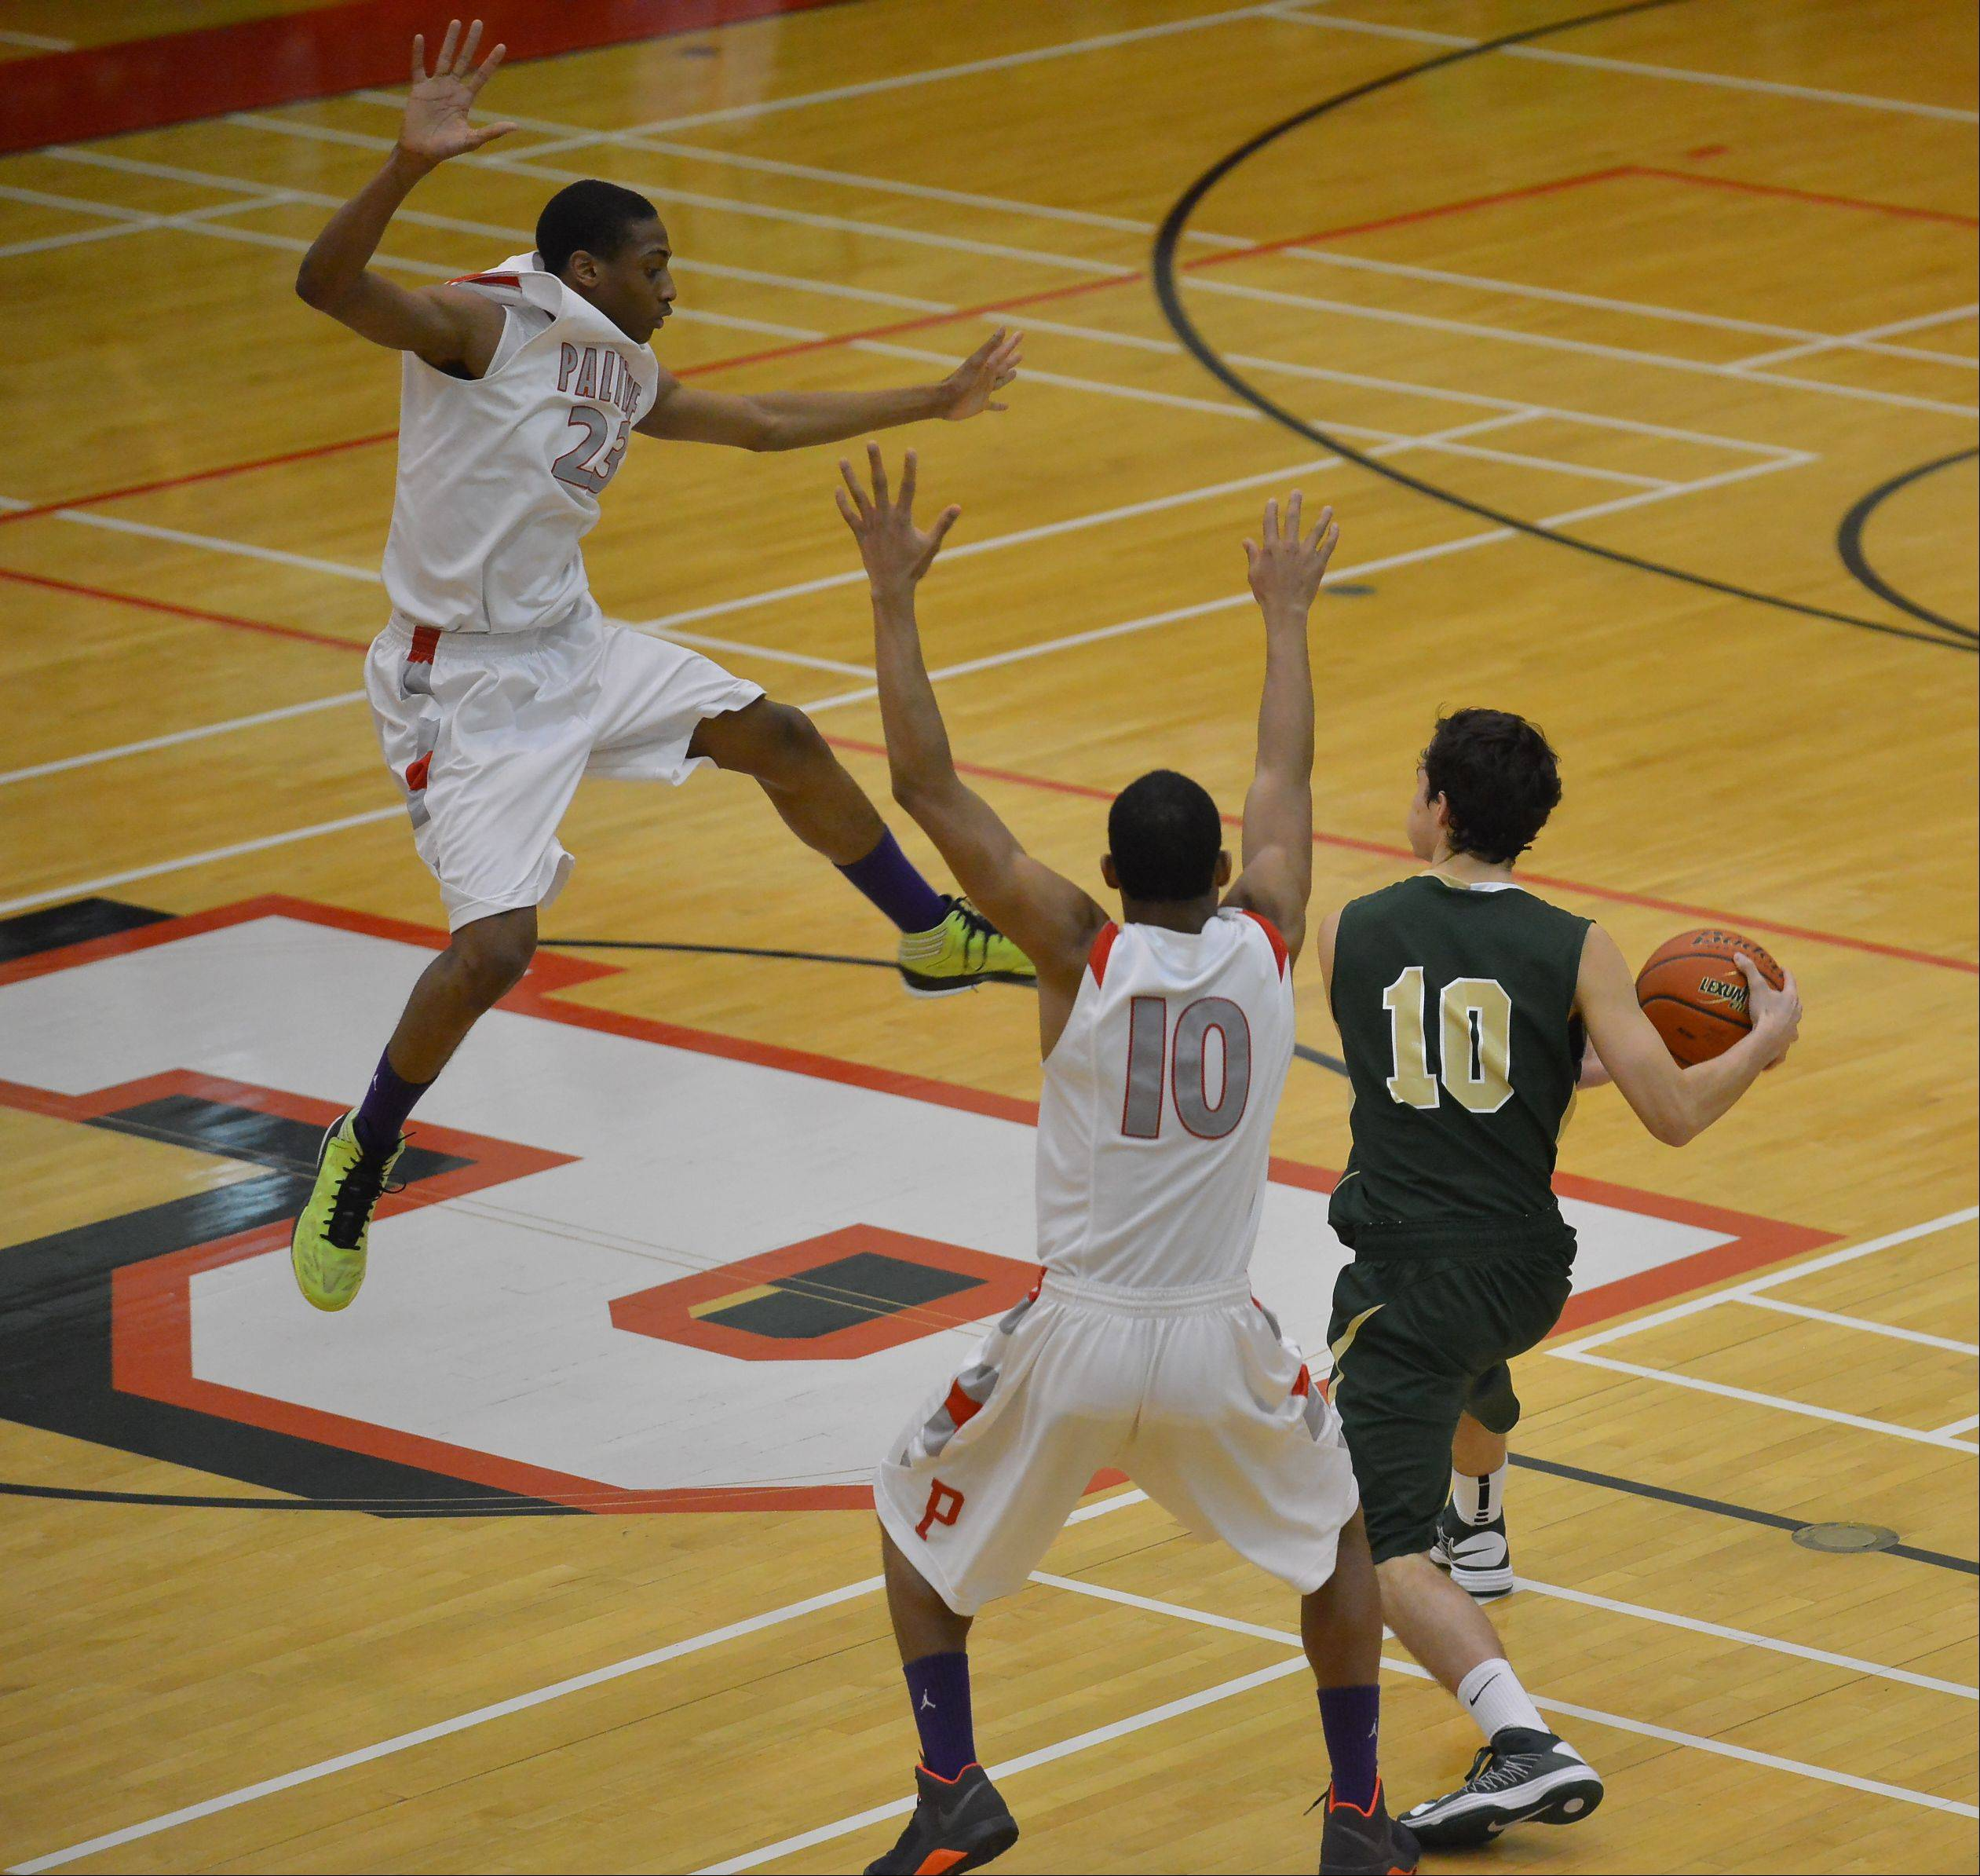 Images from the Fremd vs. Palatine boys basketball game on Friday, February 1, in Palatine.